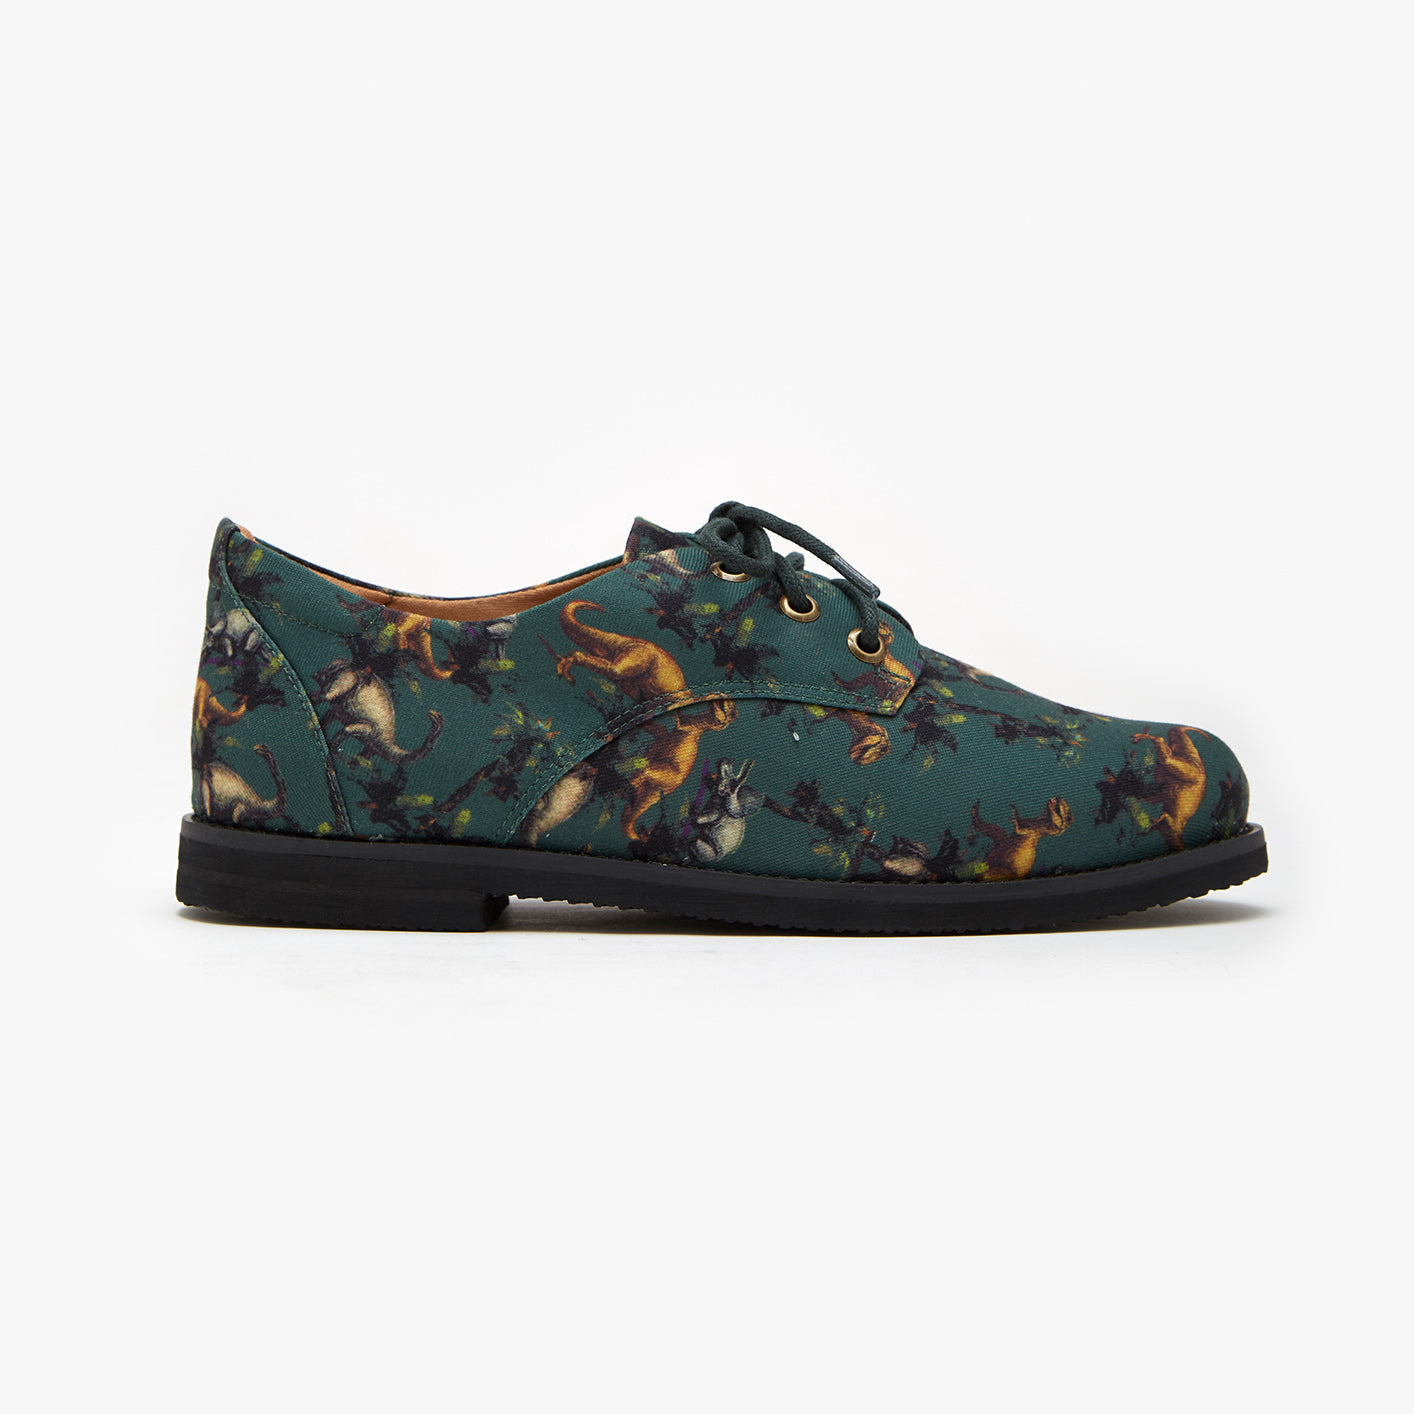 DINOS OXFORD - Insecta Shoes Brasil